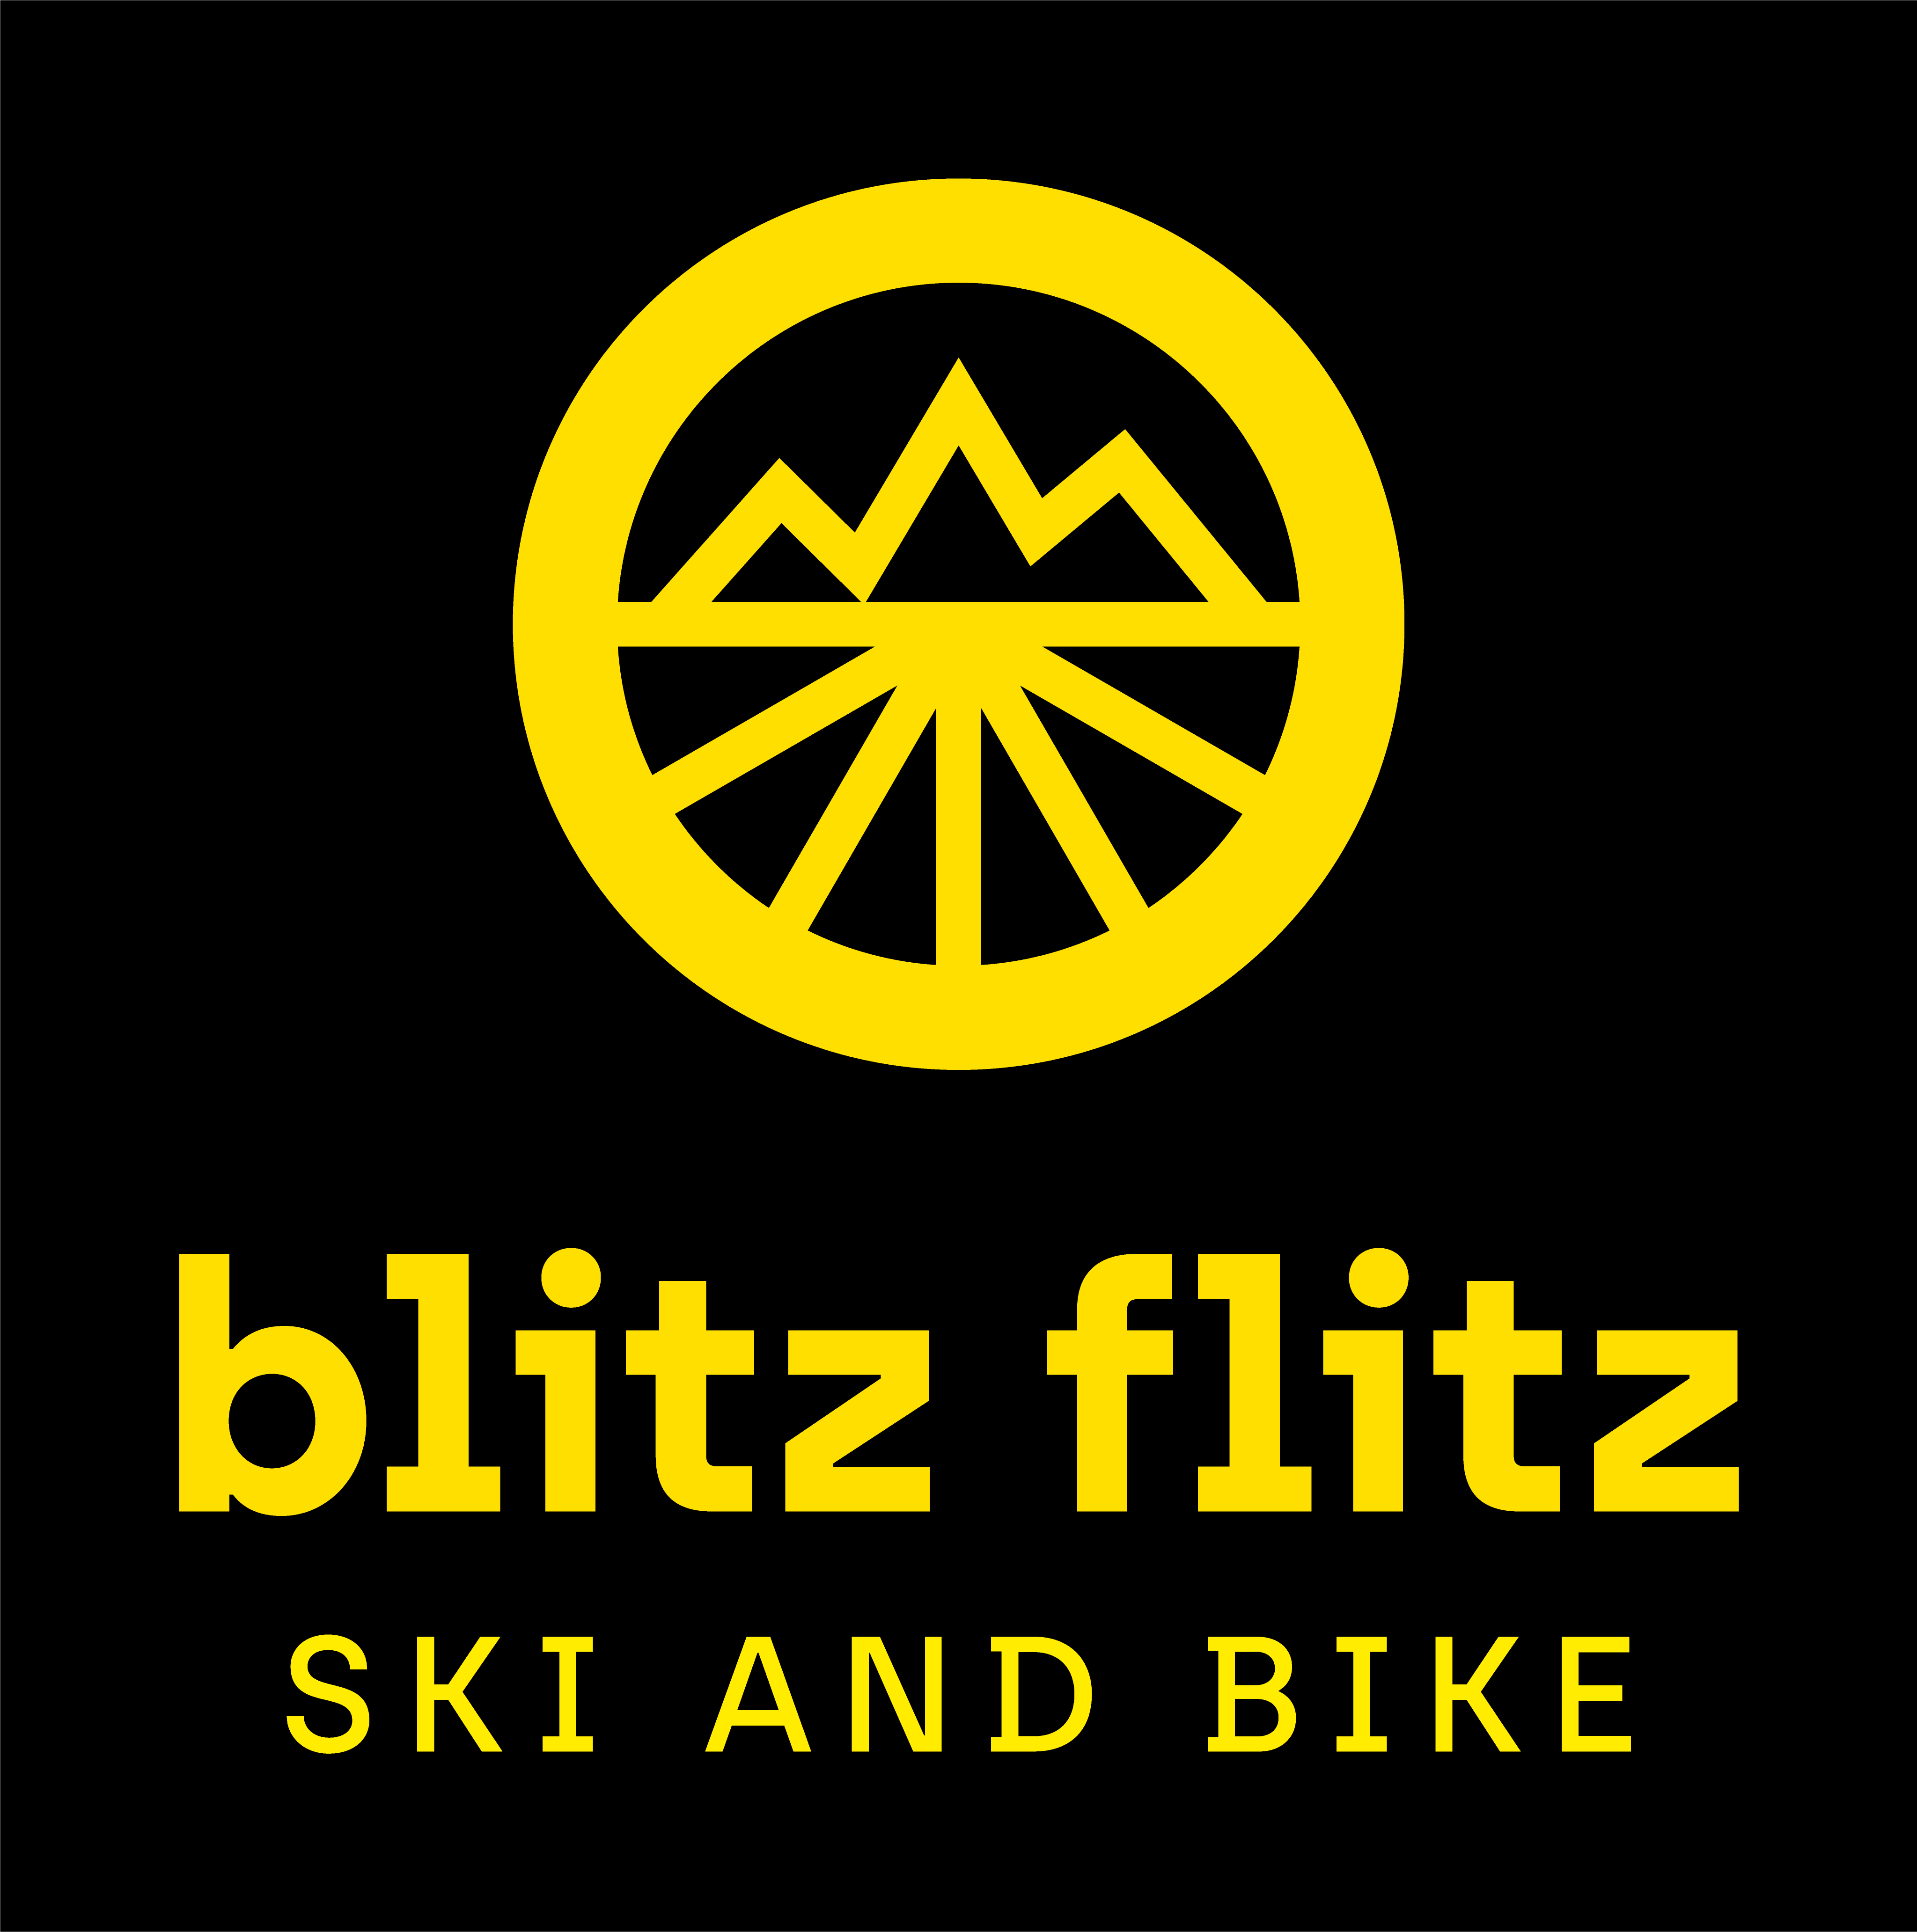 BLITZ FLITZ ski and bike